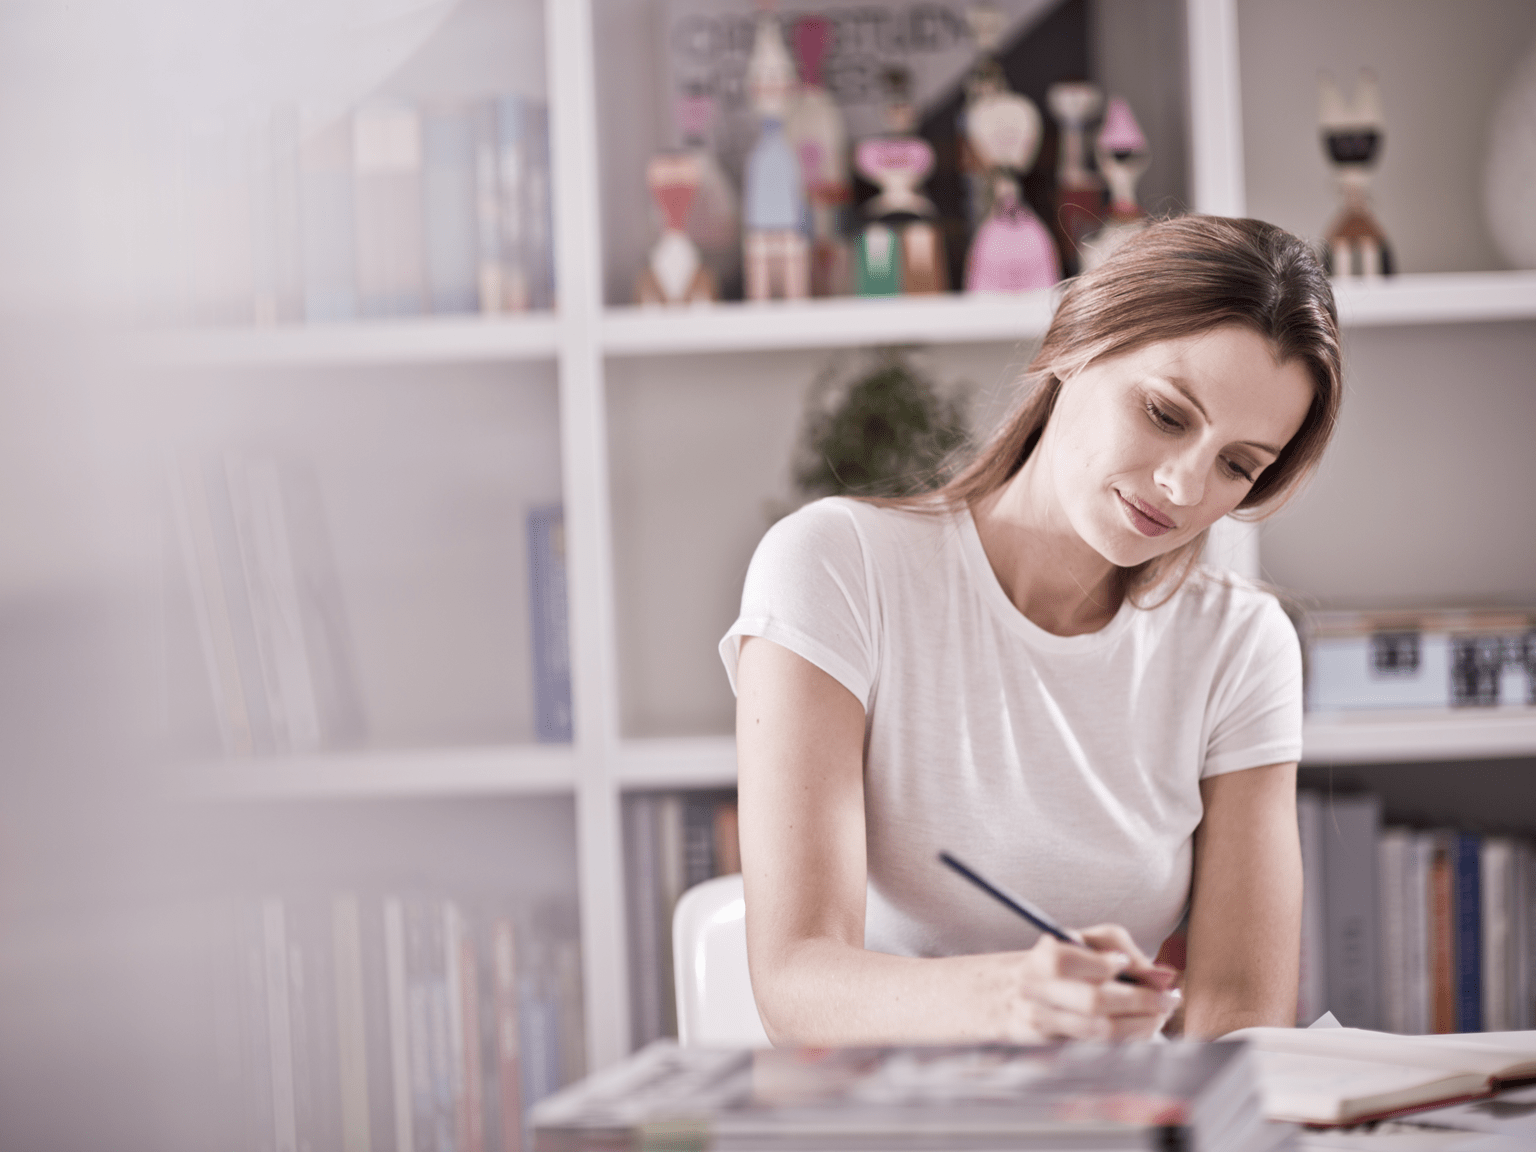 Woman making notes while sitting at a desk in a home office environment